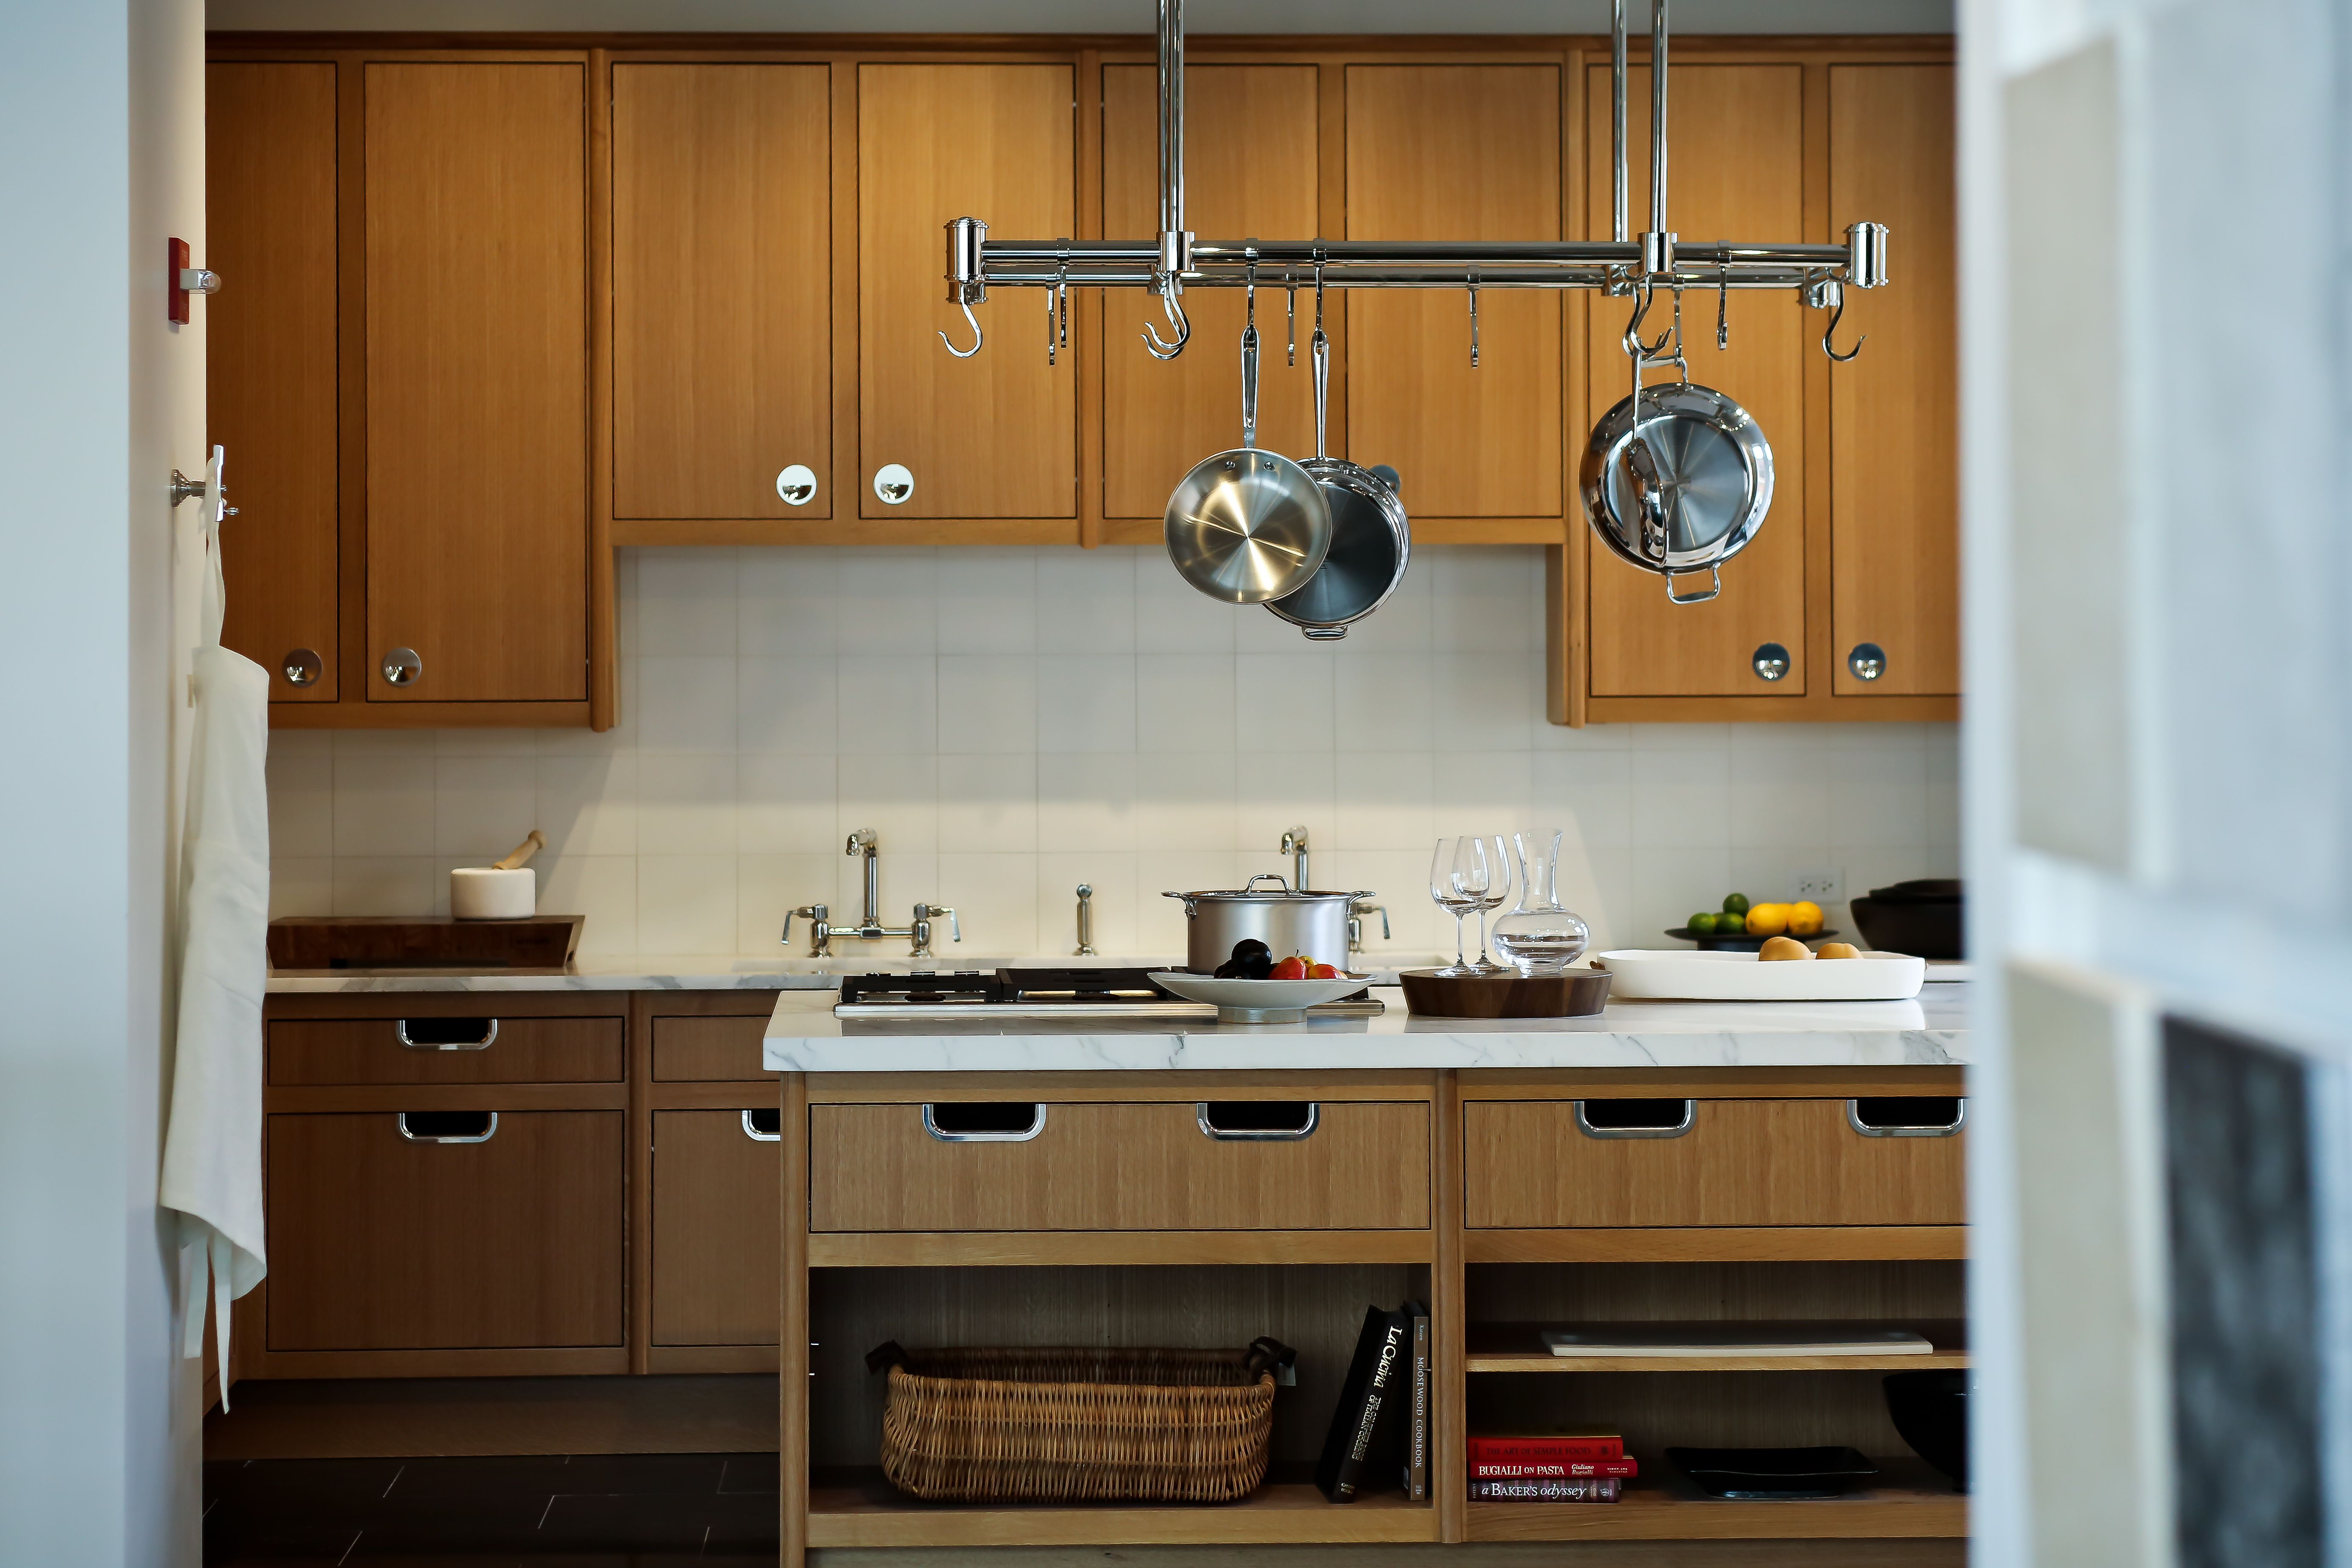 Cabinetry Collections Waterworks Waterworks Classic Kitchen Cabinets Cabinetry Cabinetry Design